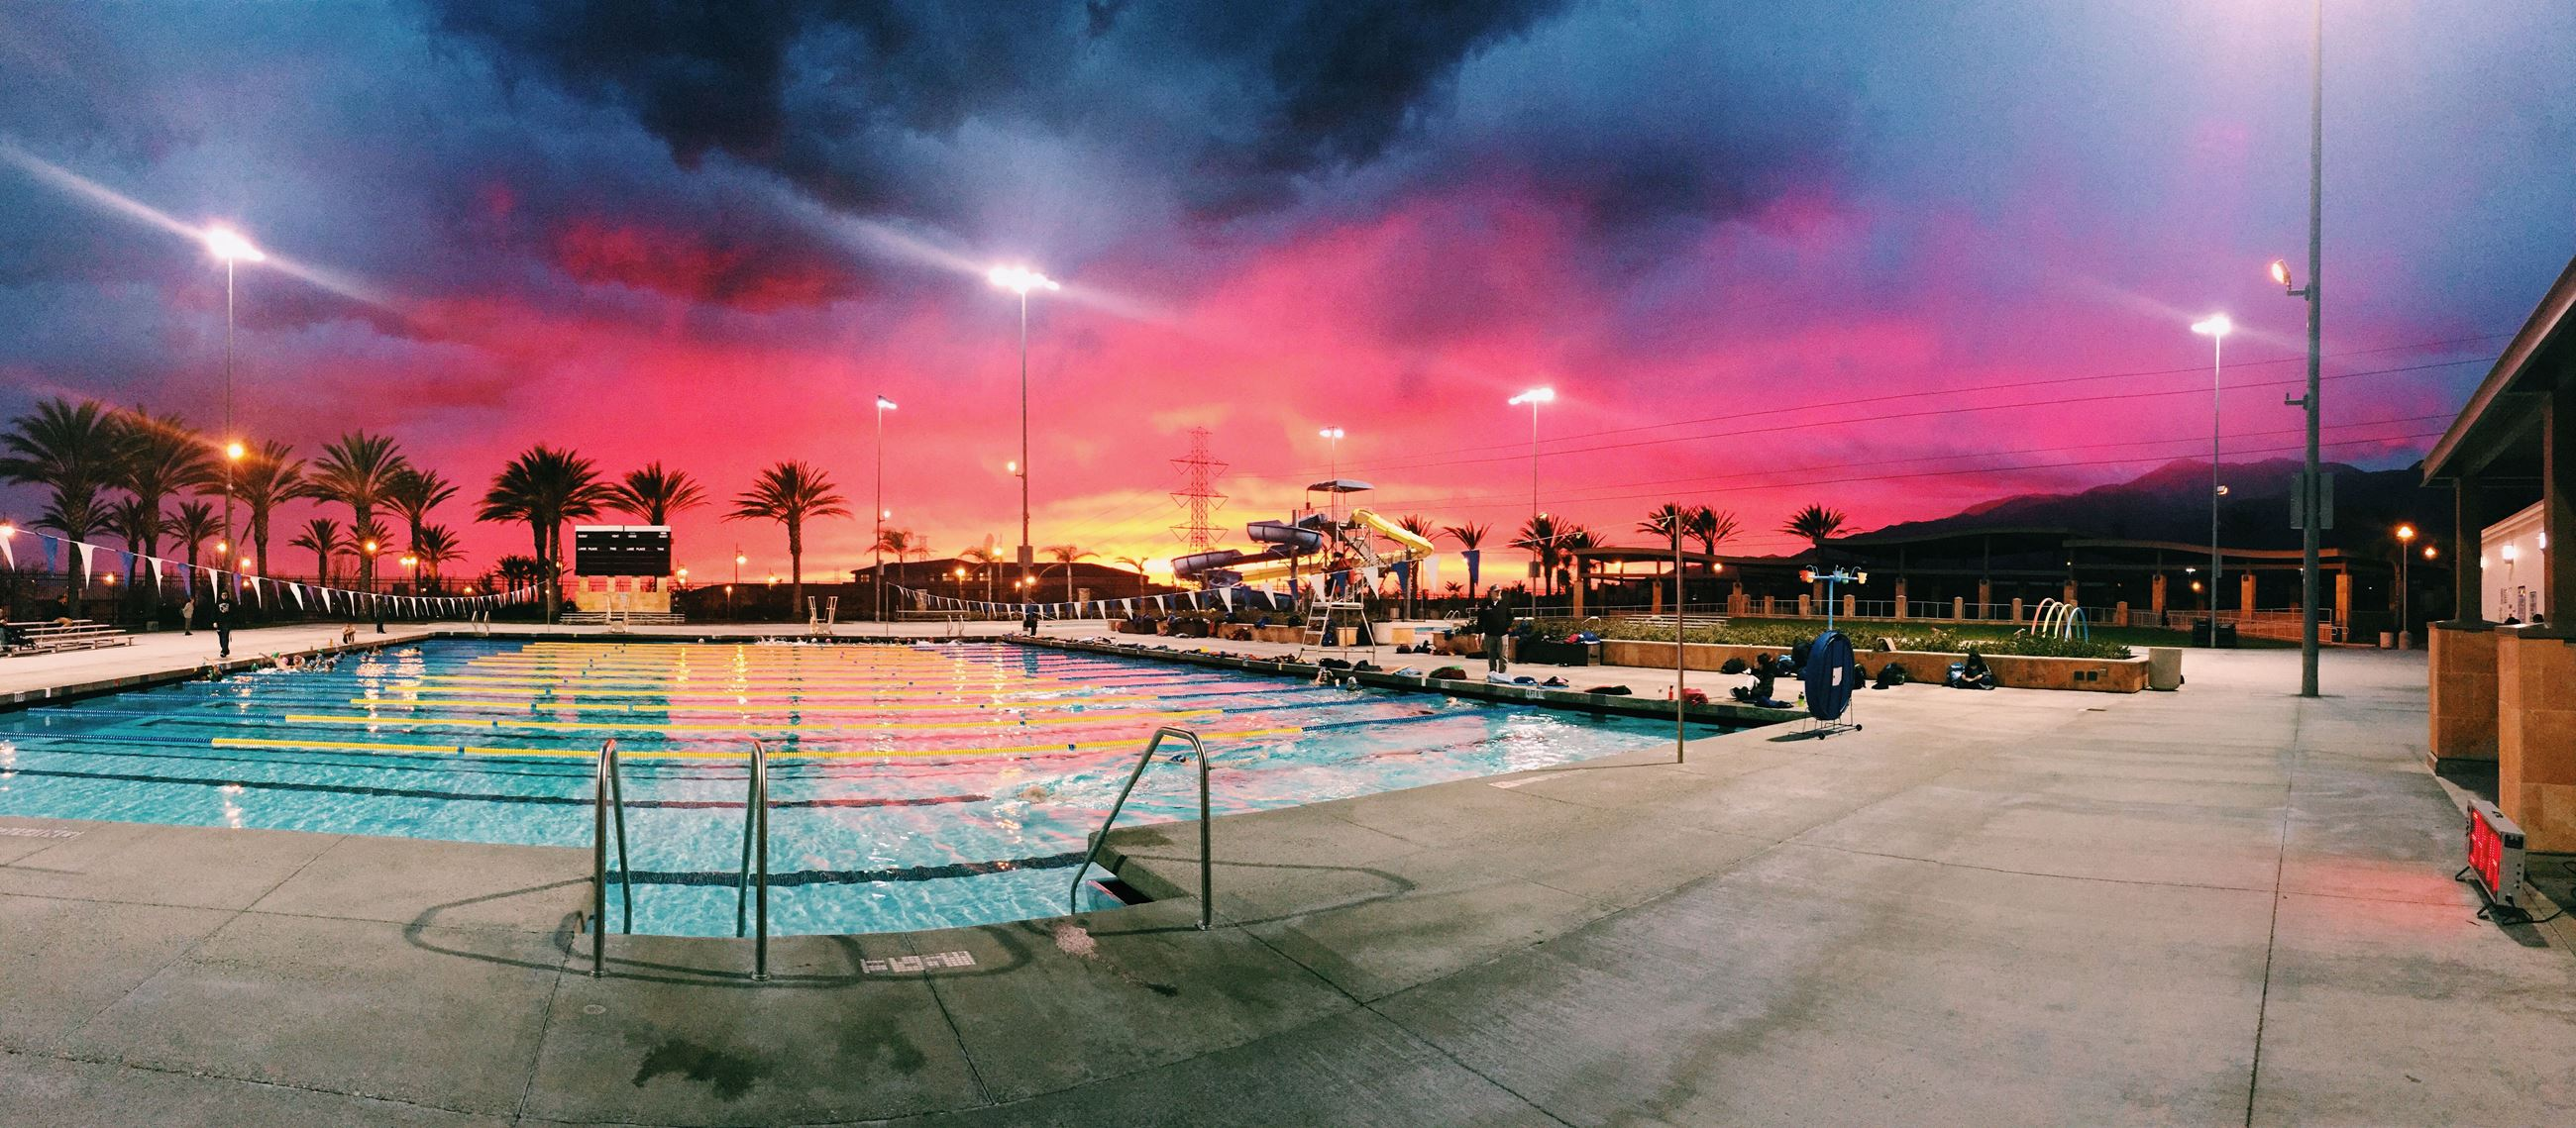 Pool at Sunset